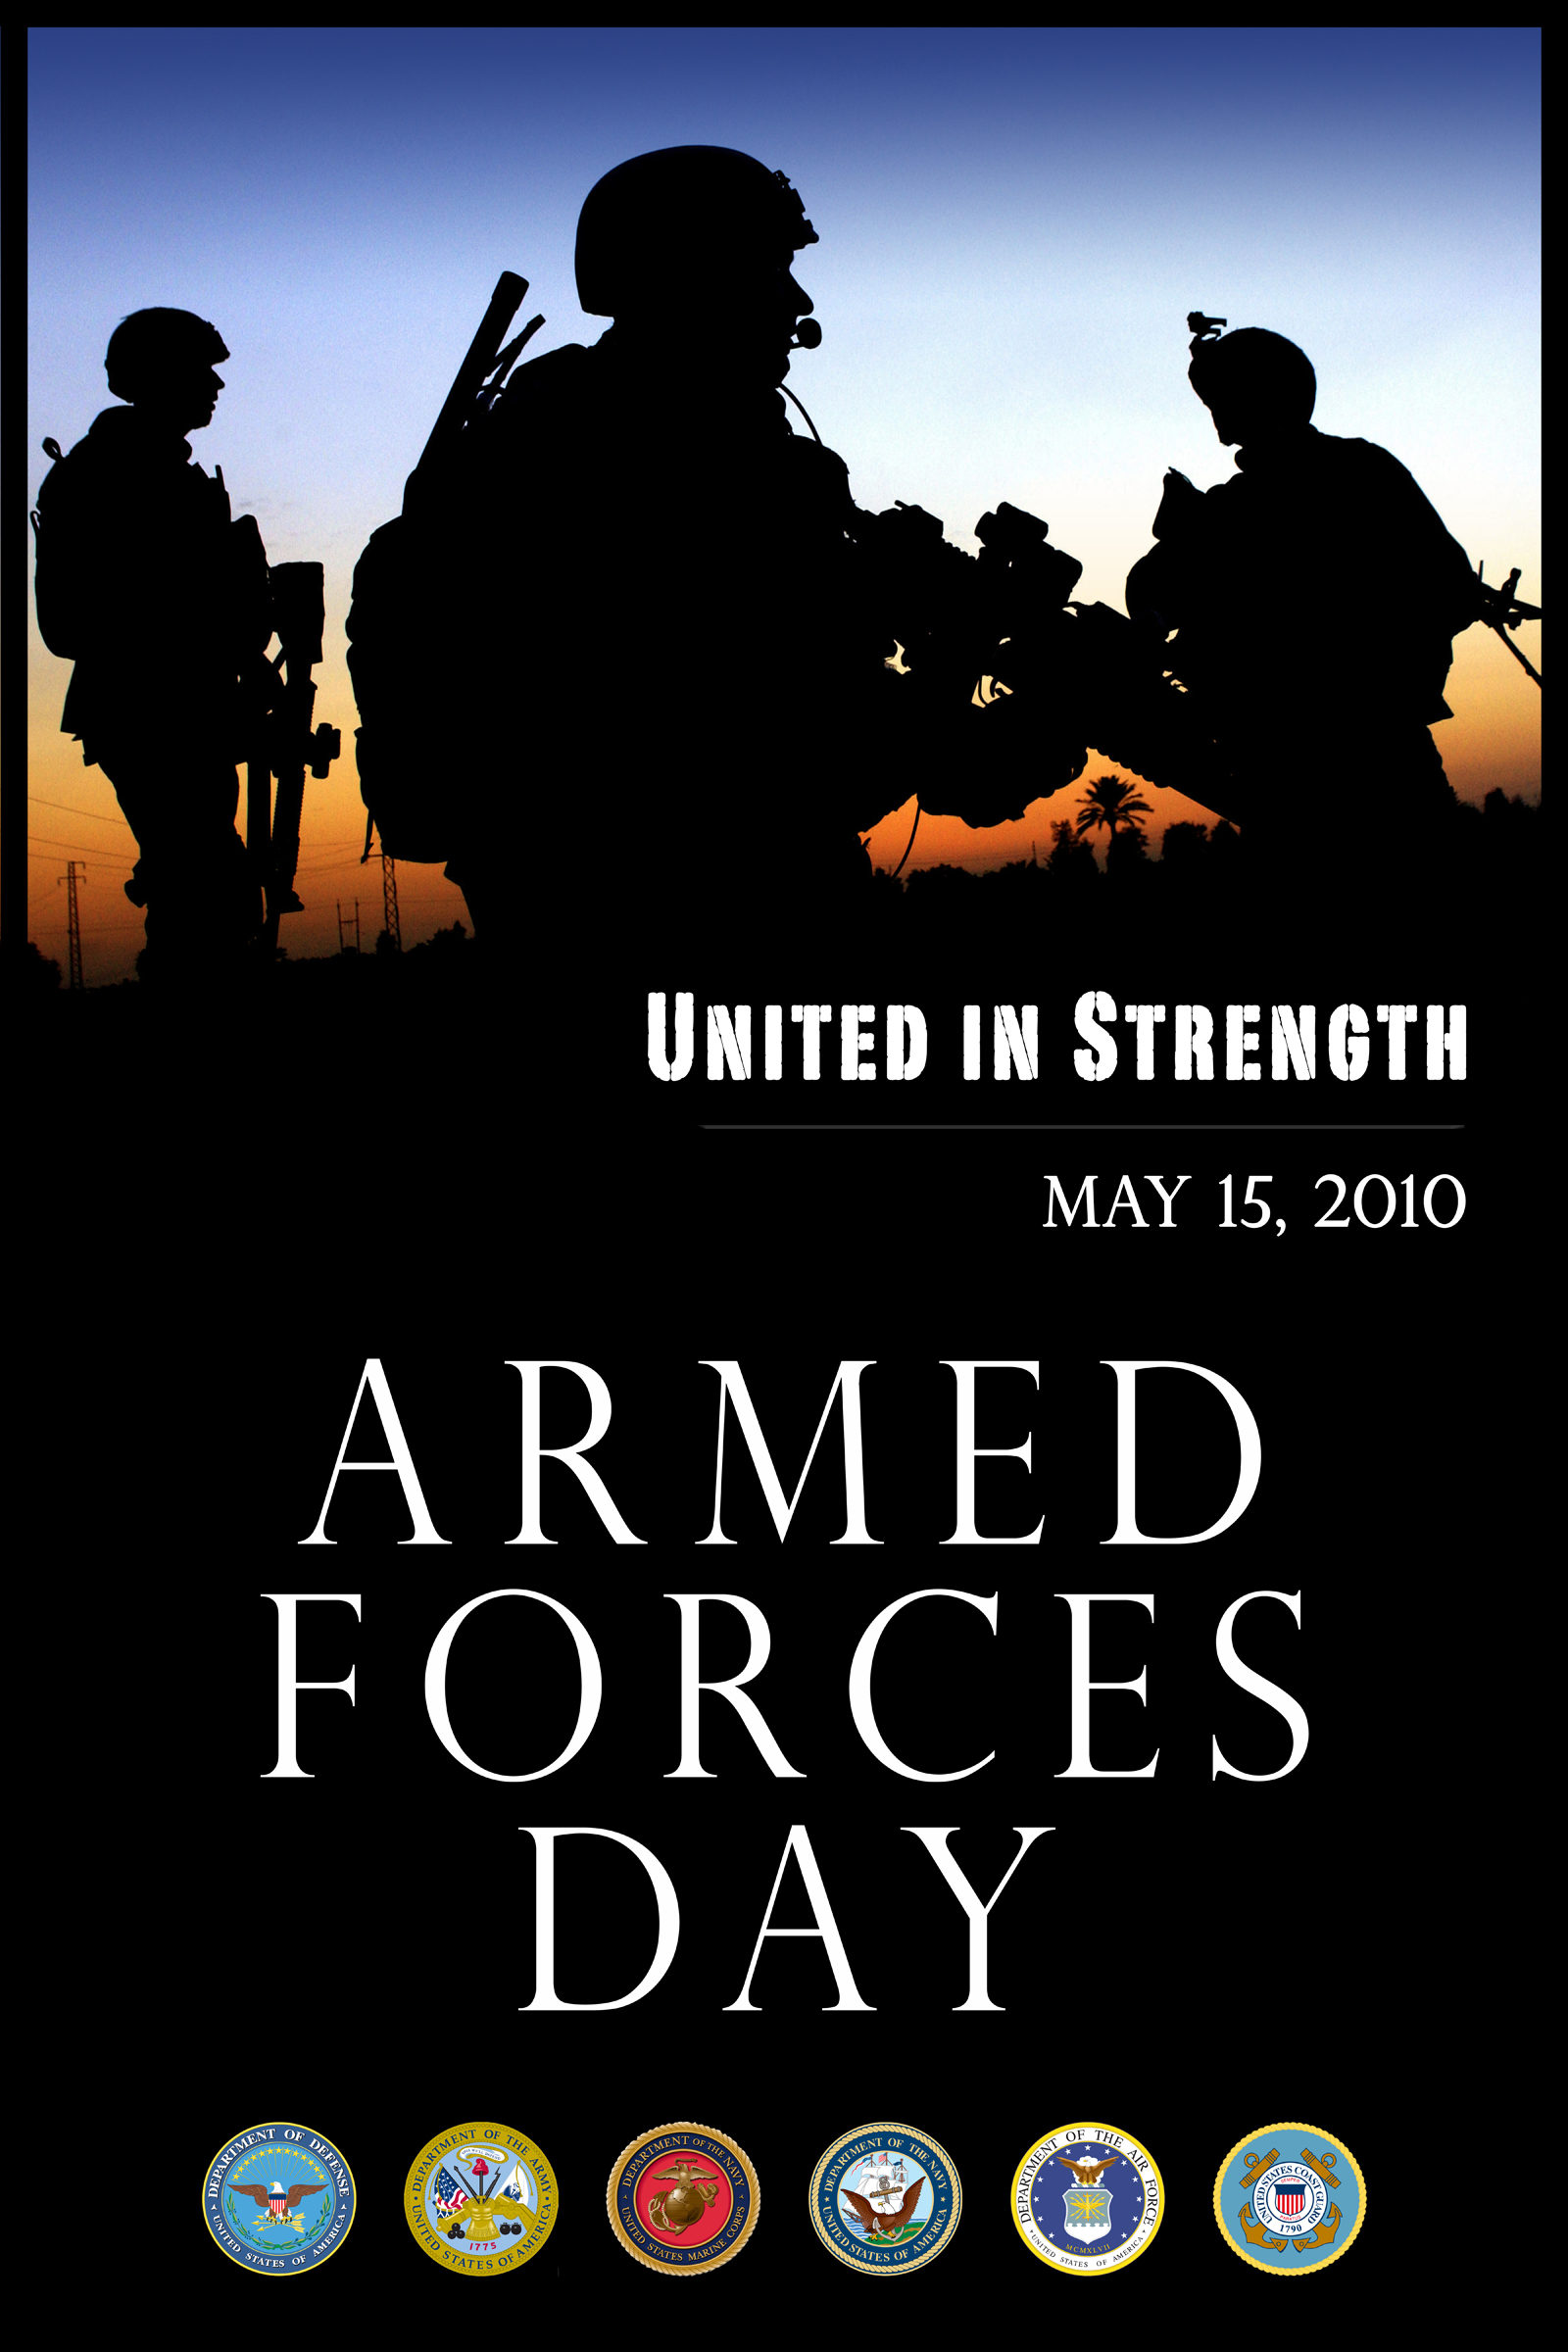 Armed Forces Day 2010 poster